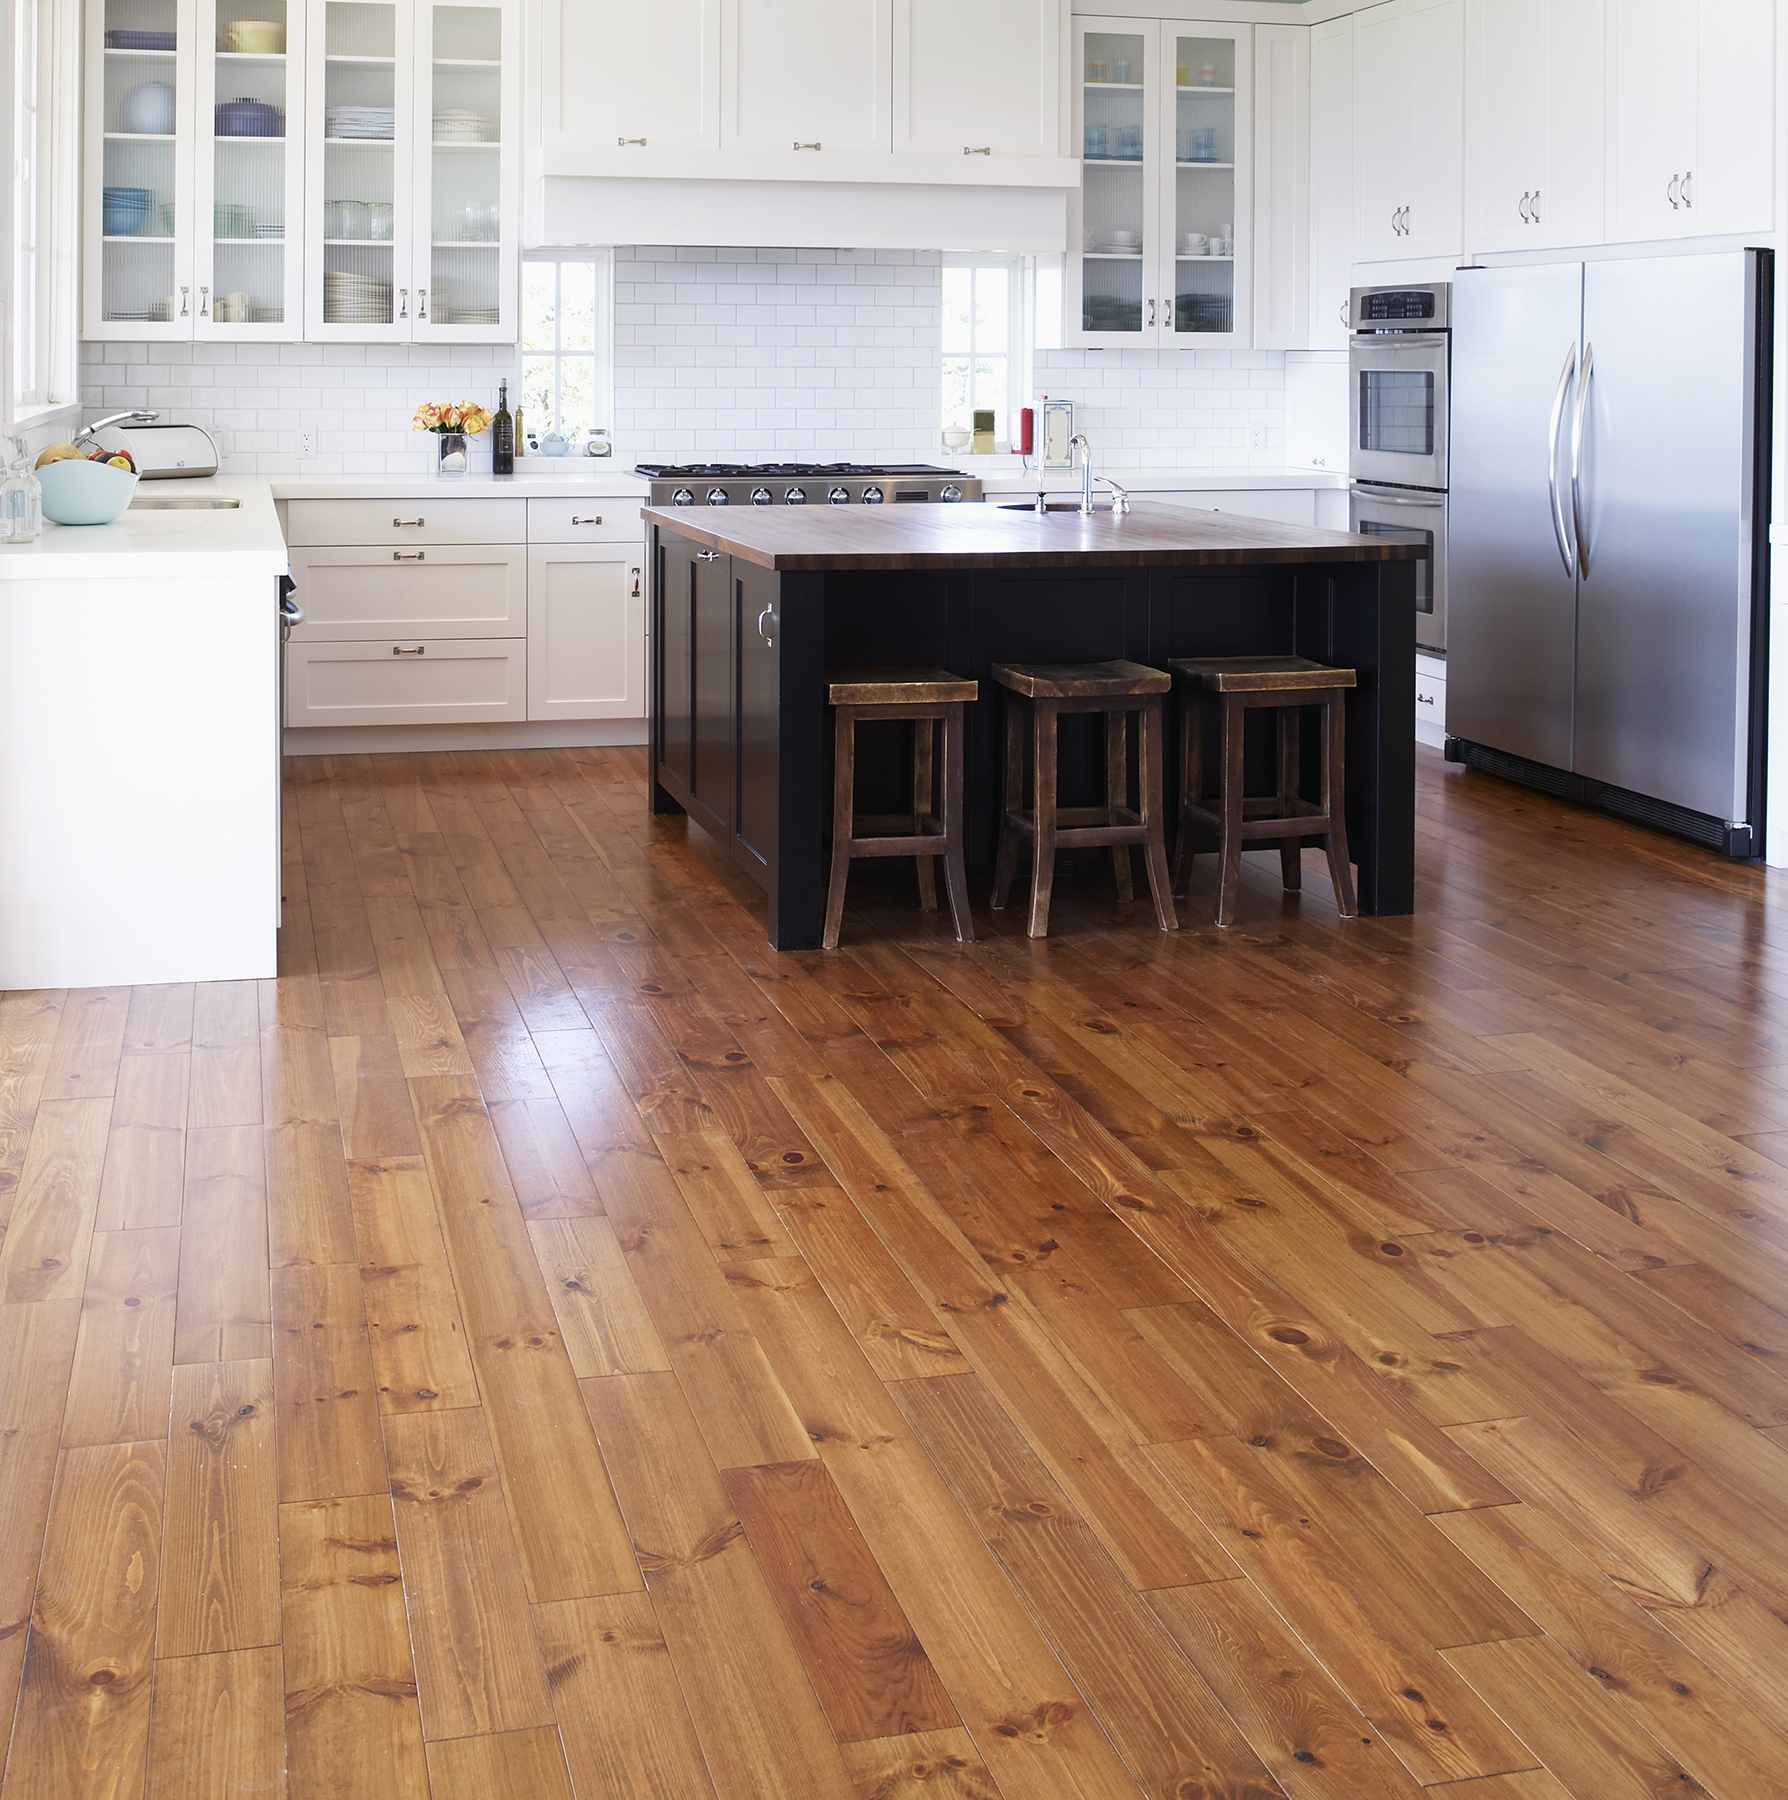 10 Expert Tips To Care For Wood Floors | Real Simple